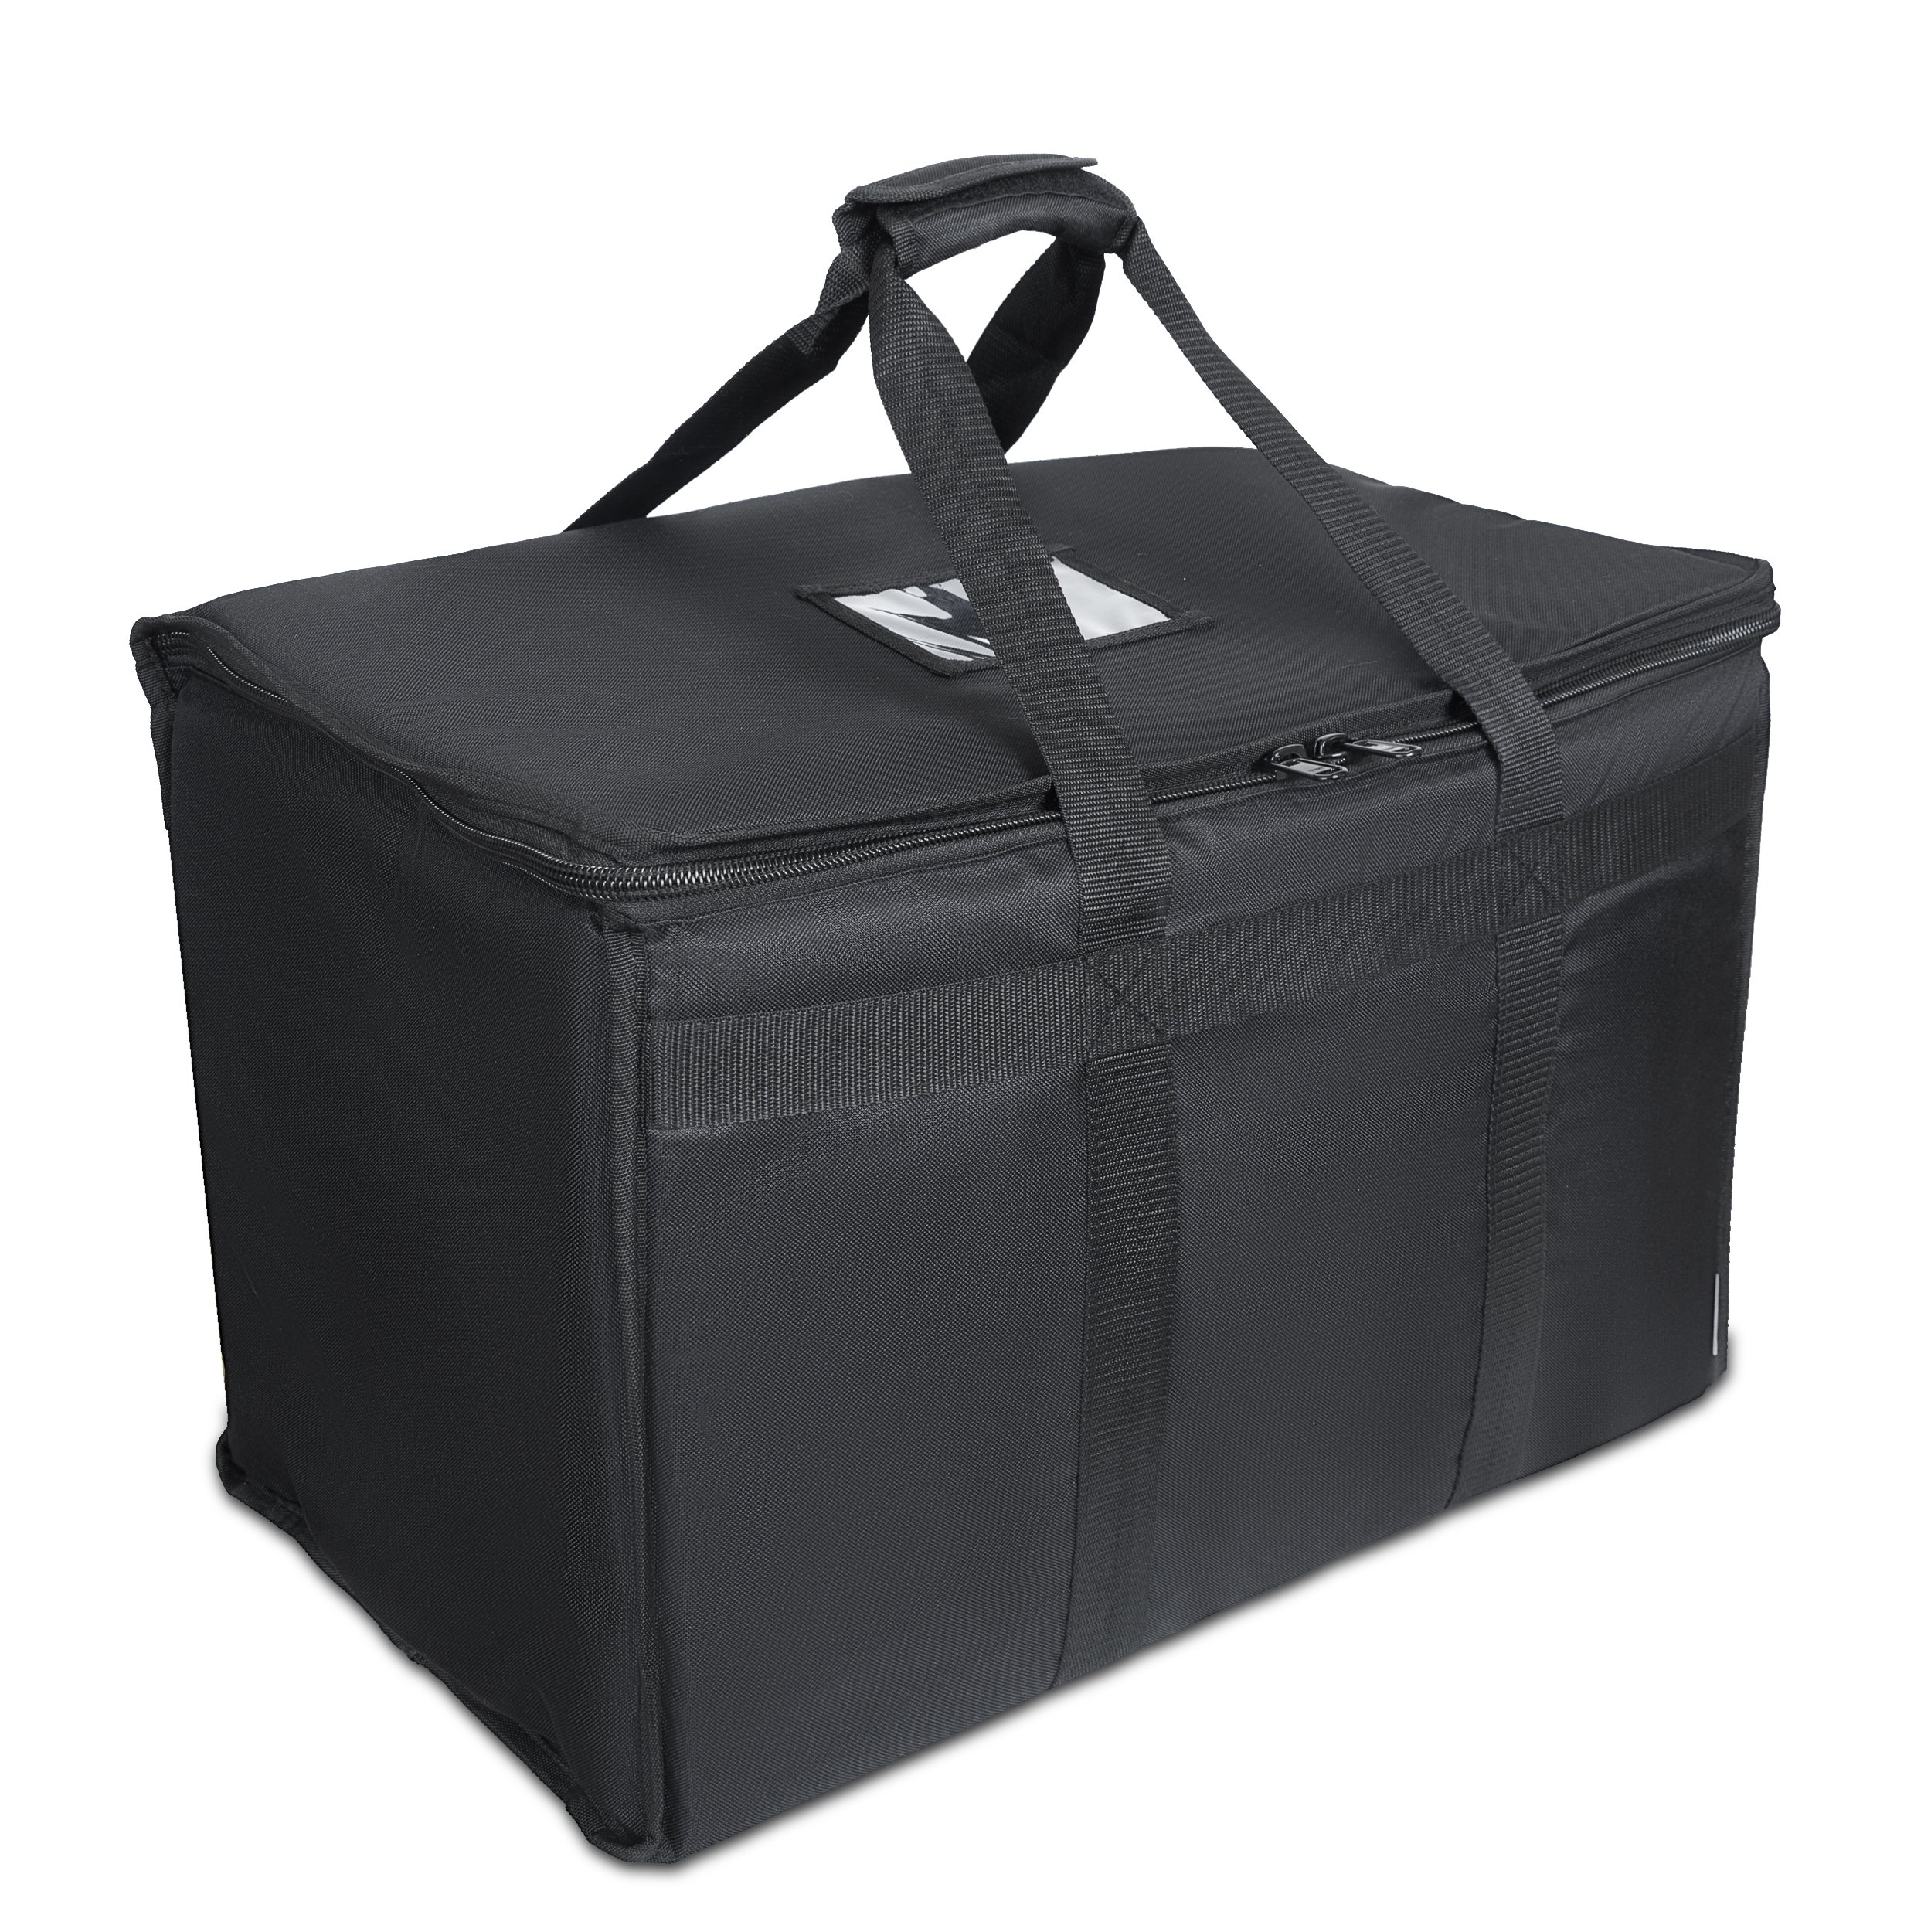 "Food Delivery Bag. Heavy Duty Bag with Strong Insulation. Reinforced Stitching for Heavy Loads. Perfect for Food Delivery & Commercial Transportation. Fit Chafing Trays. Large Capacity (23""x14""x15"")."